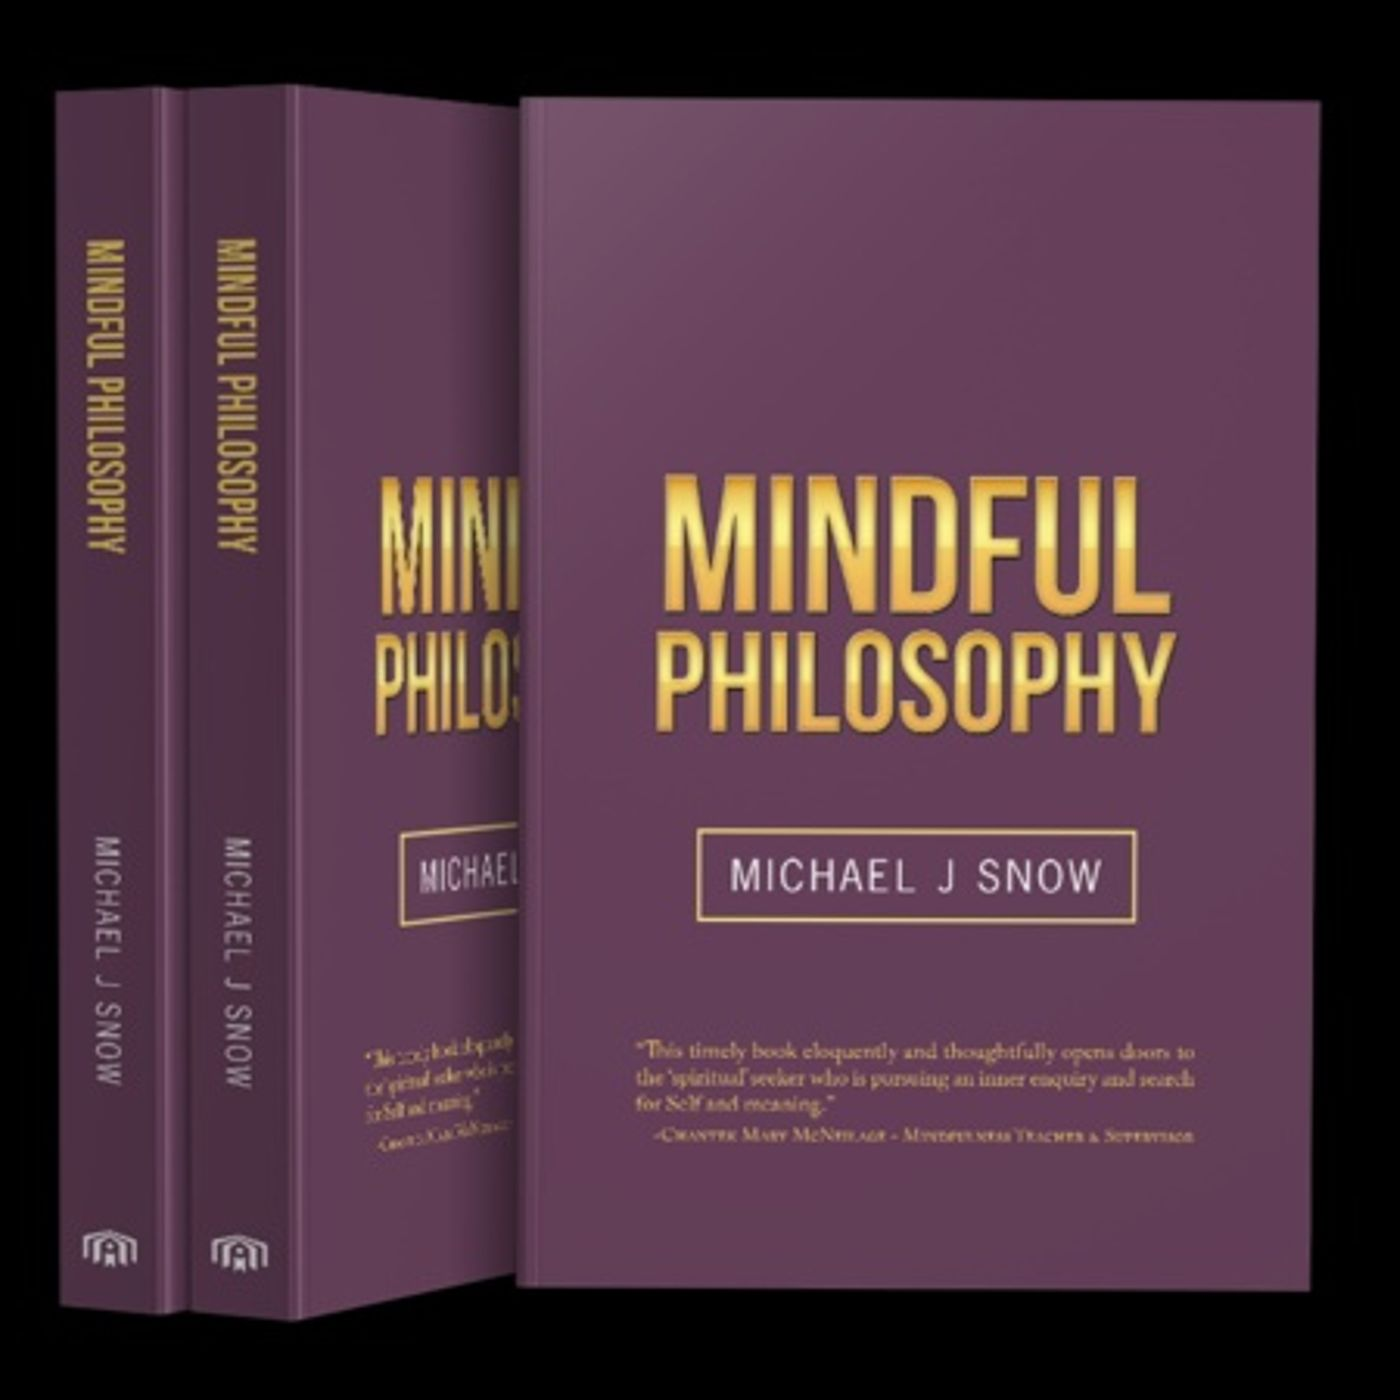 A spiritual philosophical journey through the mind, thoughts, existence and soul